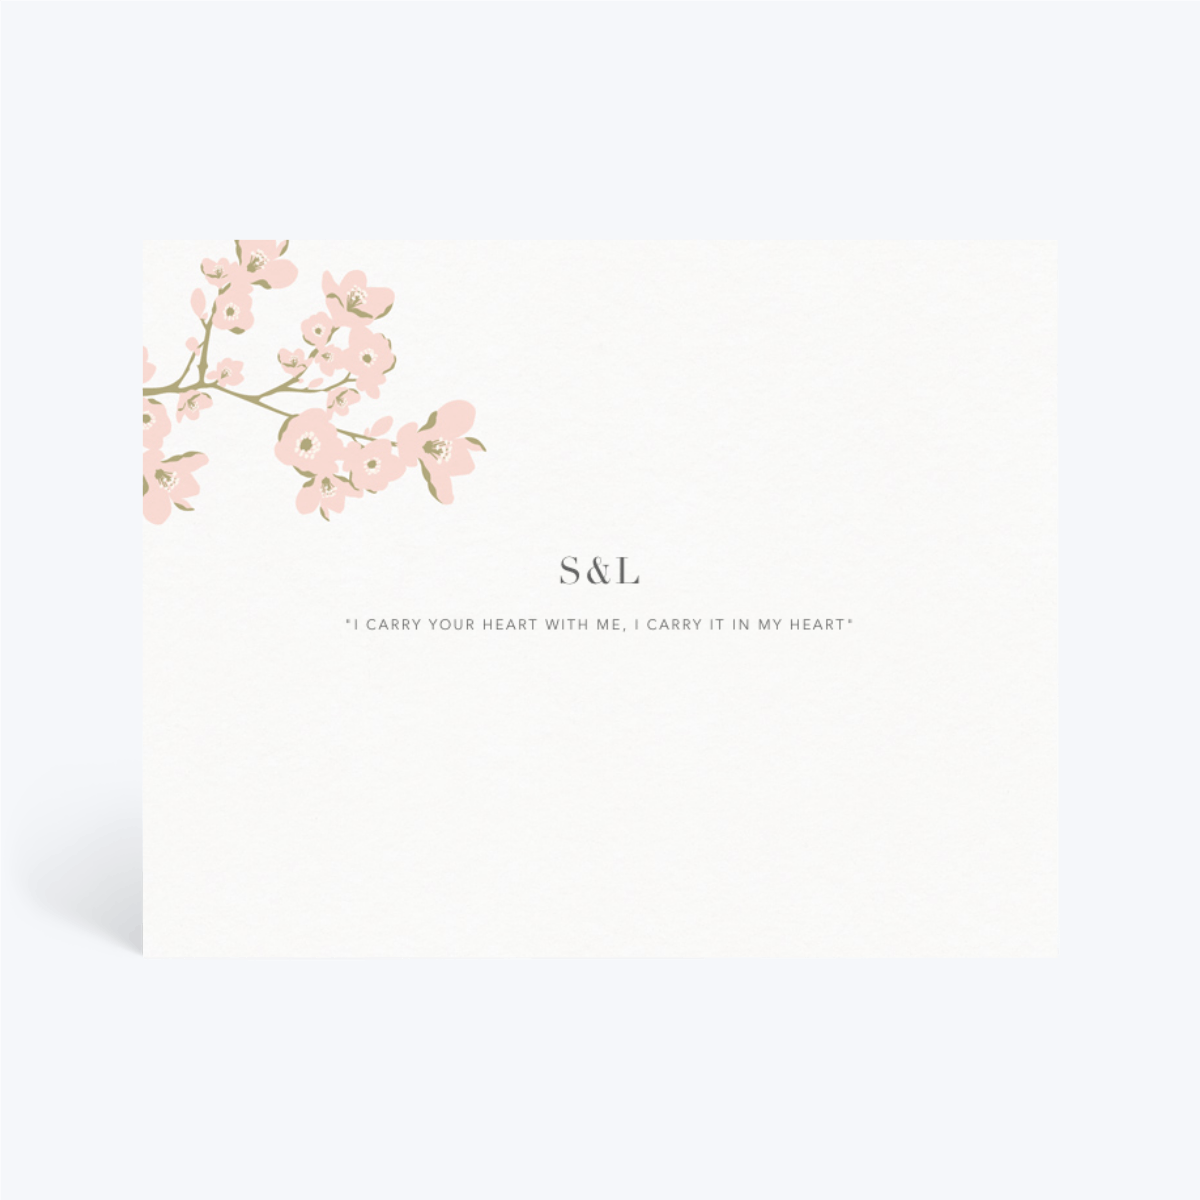 Https%3a%2f%2fwww.papier.com%2fproduct image%2f99059%2f29%2fcherry blossoms 25209 back 1576688967.png?ixlib=rb 1.1